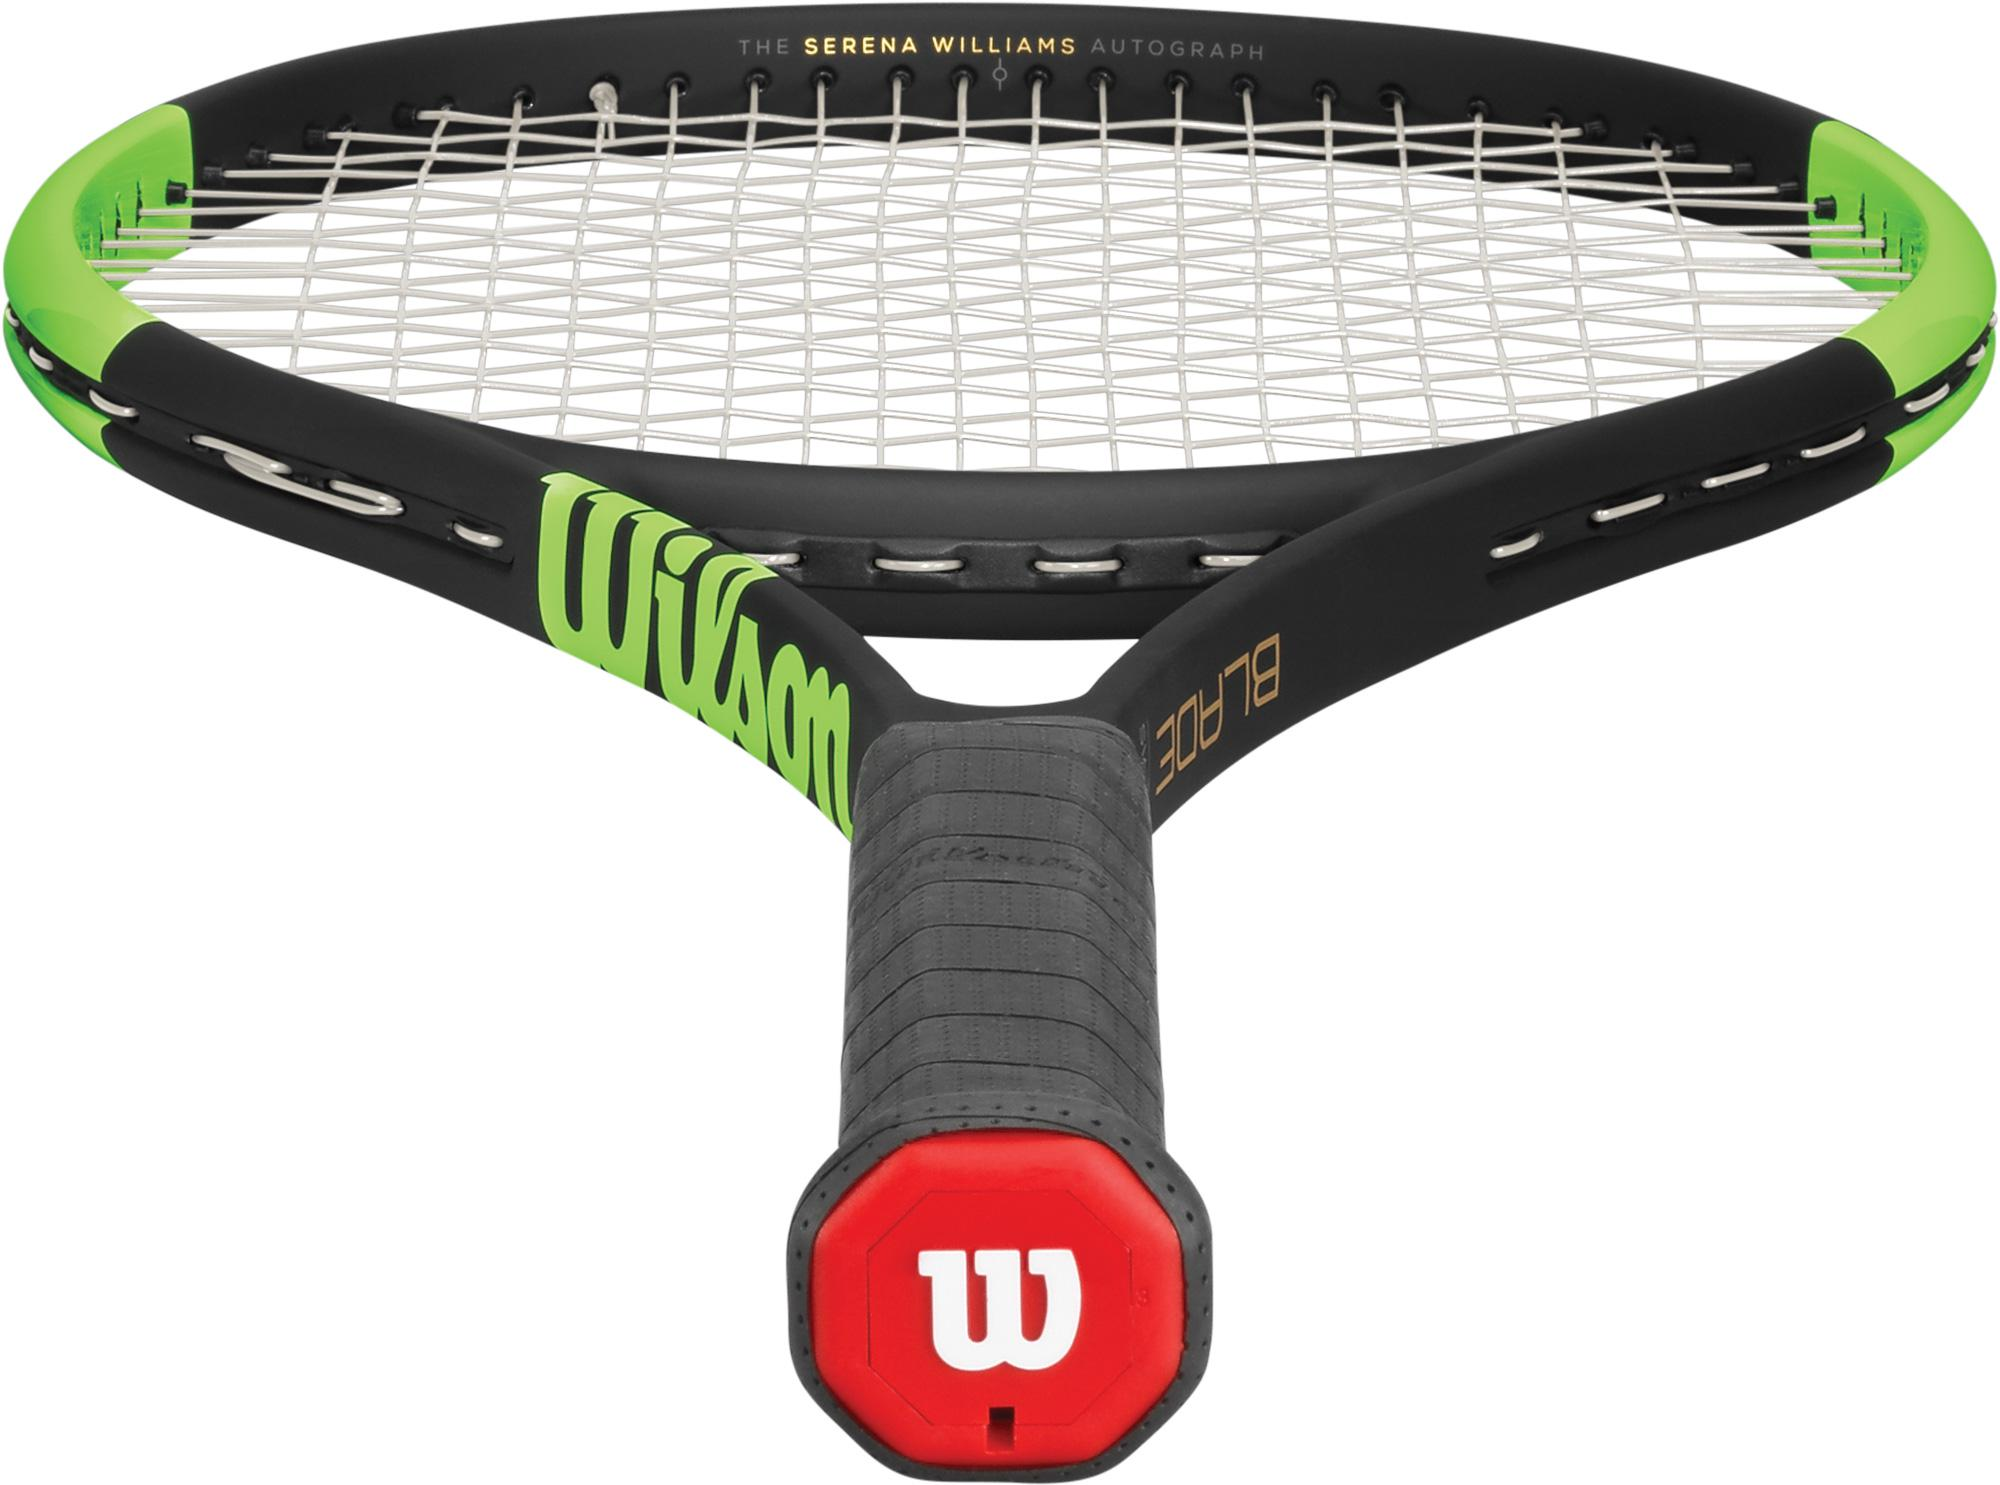 Wilson Blade SW104 Autograph Countervail Tennis Racket [Frame Only]